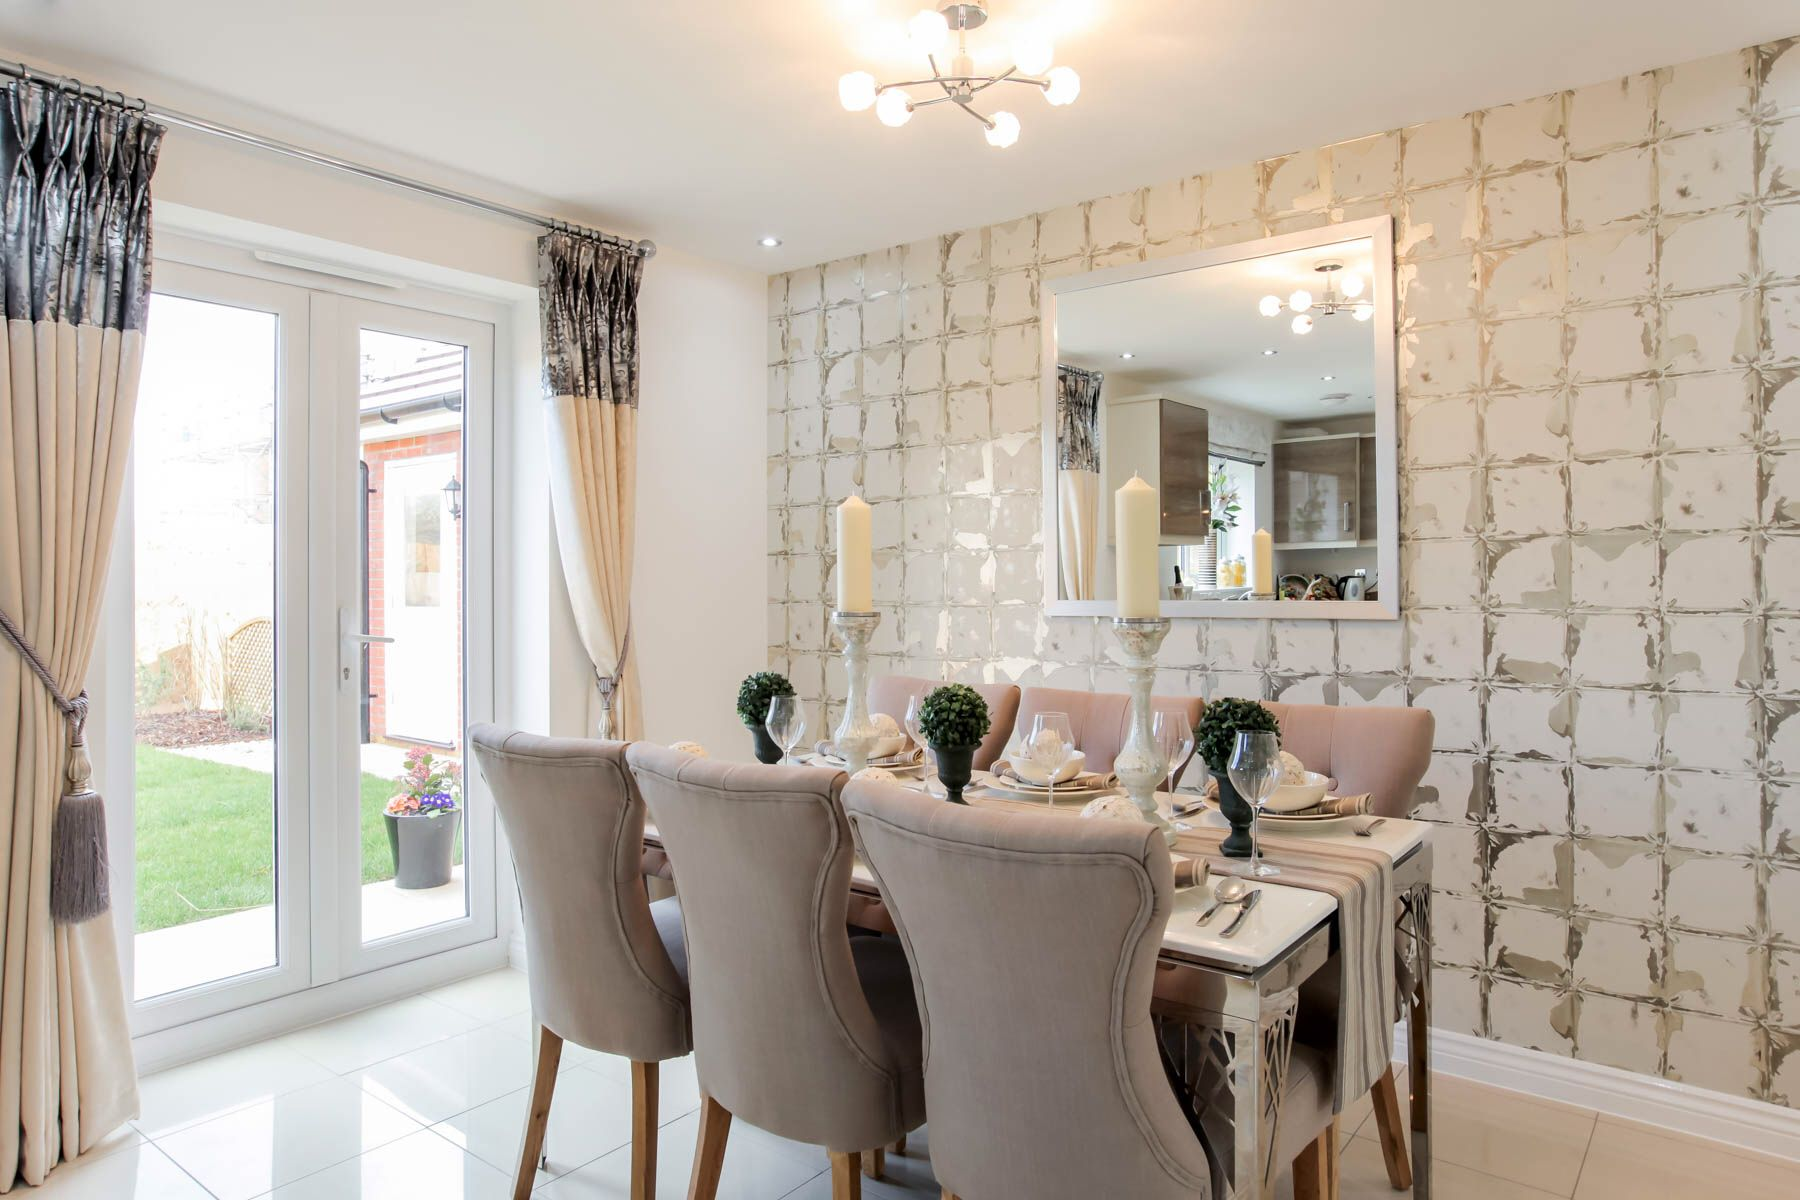 Taylor Wimpey Midford Show Home Kingsmead. I love the texture the ...